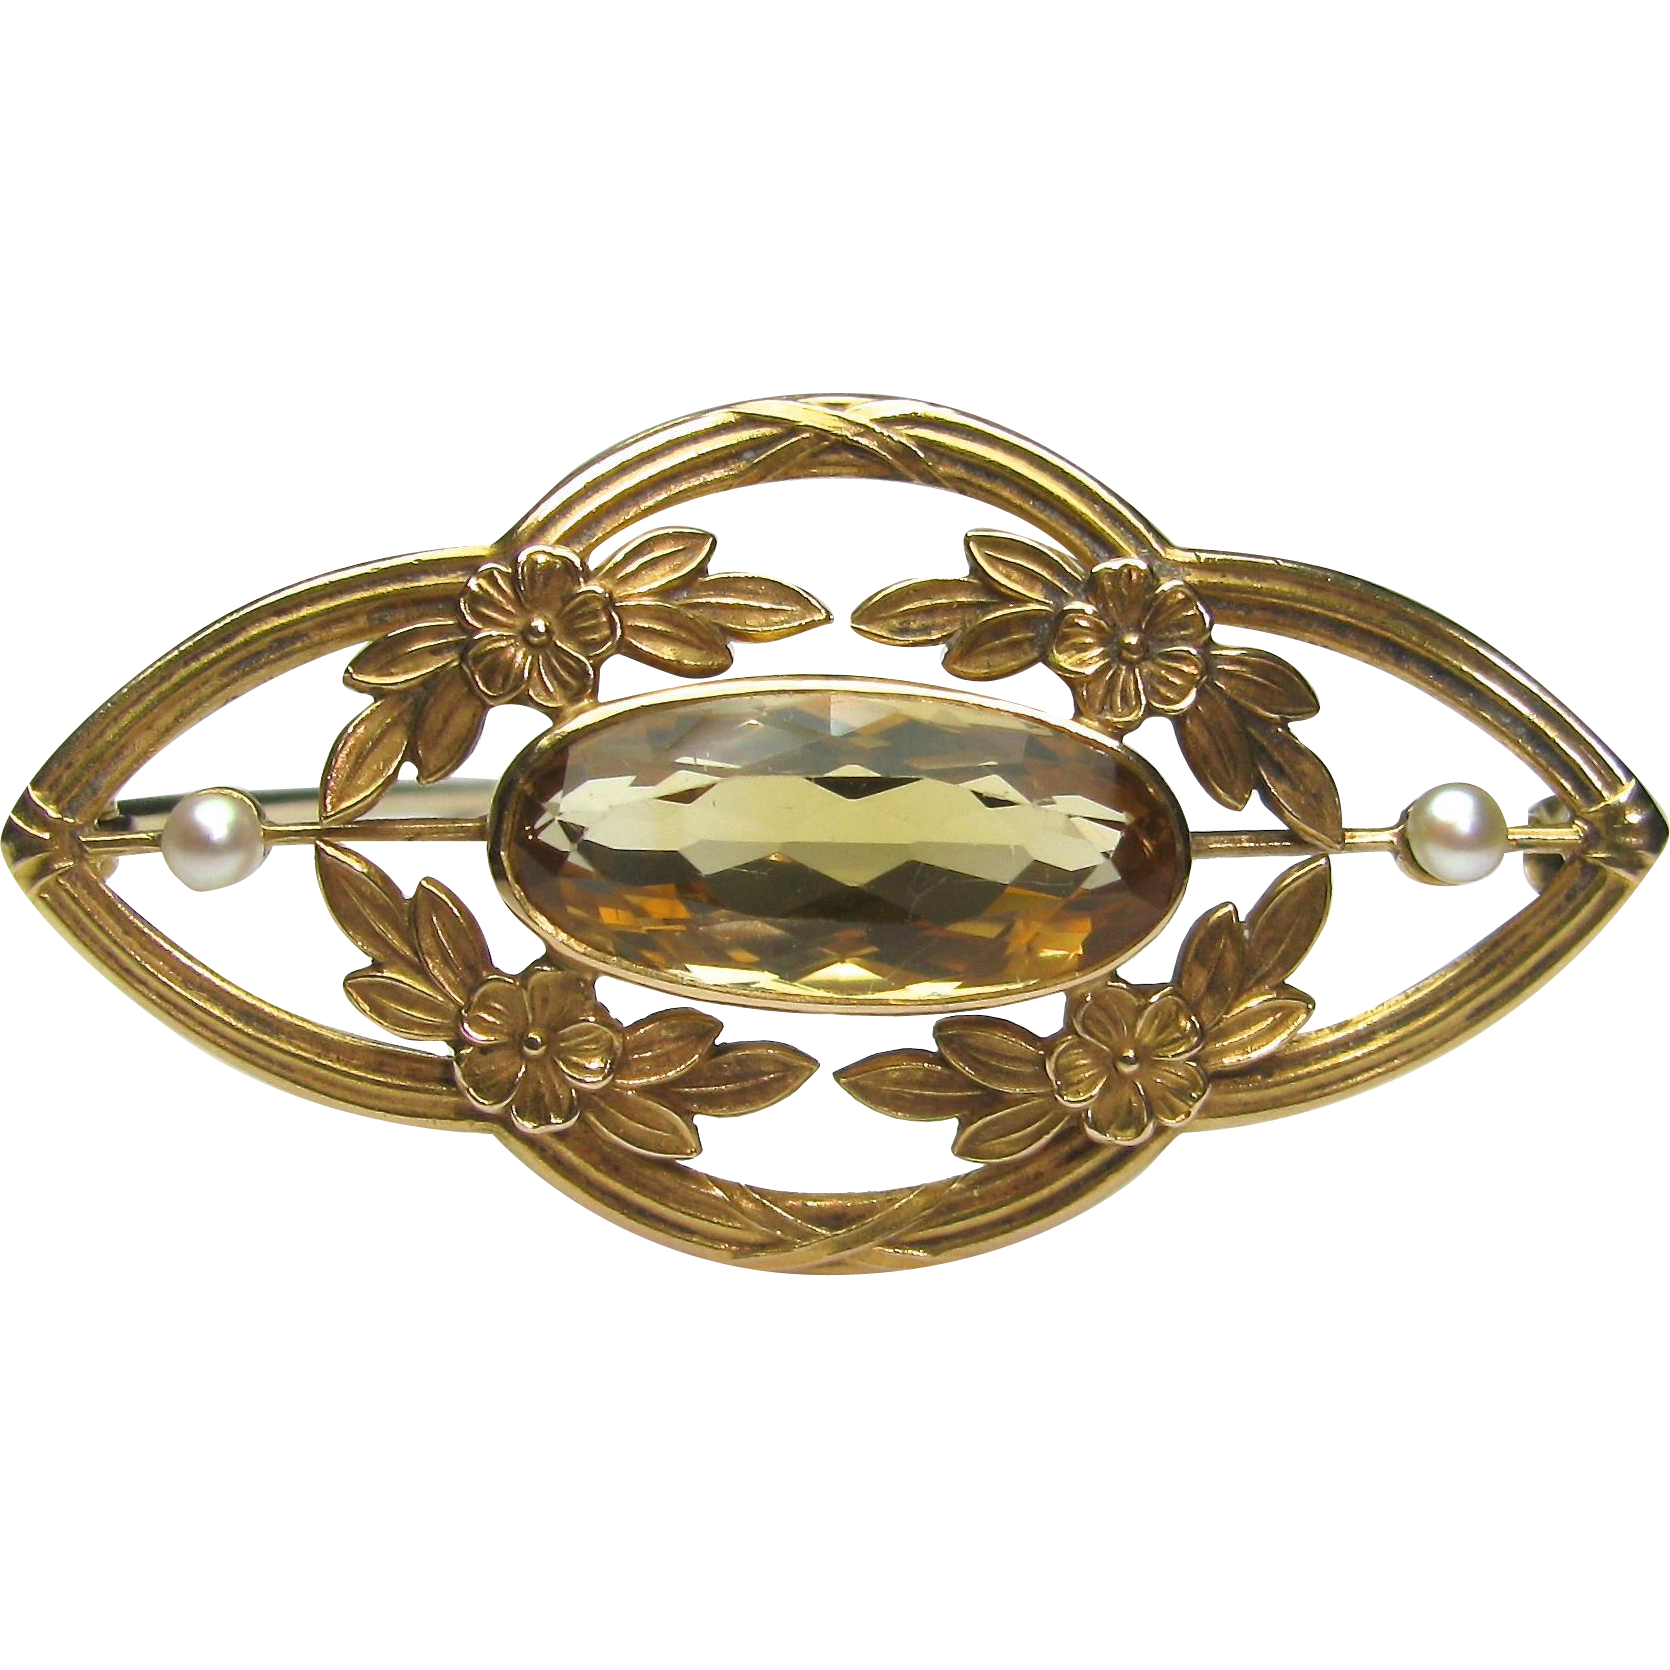 Antique Edwardian 14K Gold Citrine & Seed Pearl Brooch